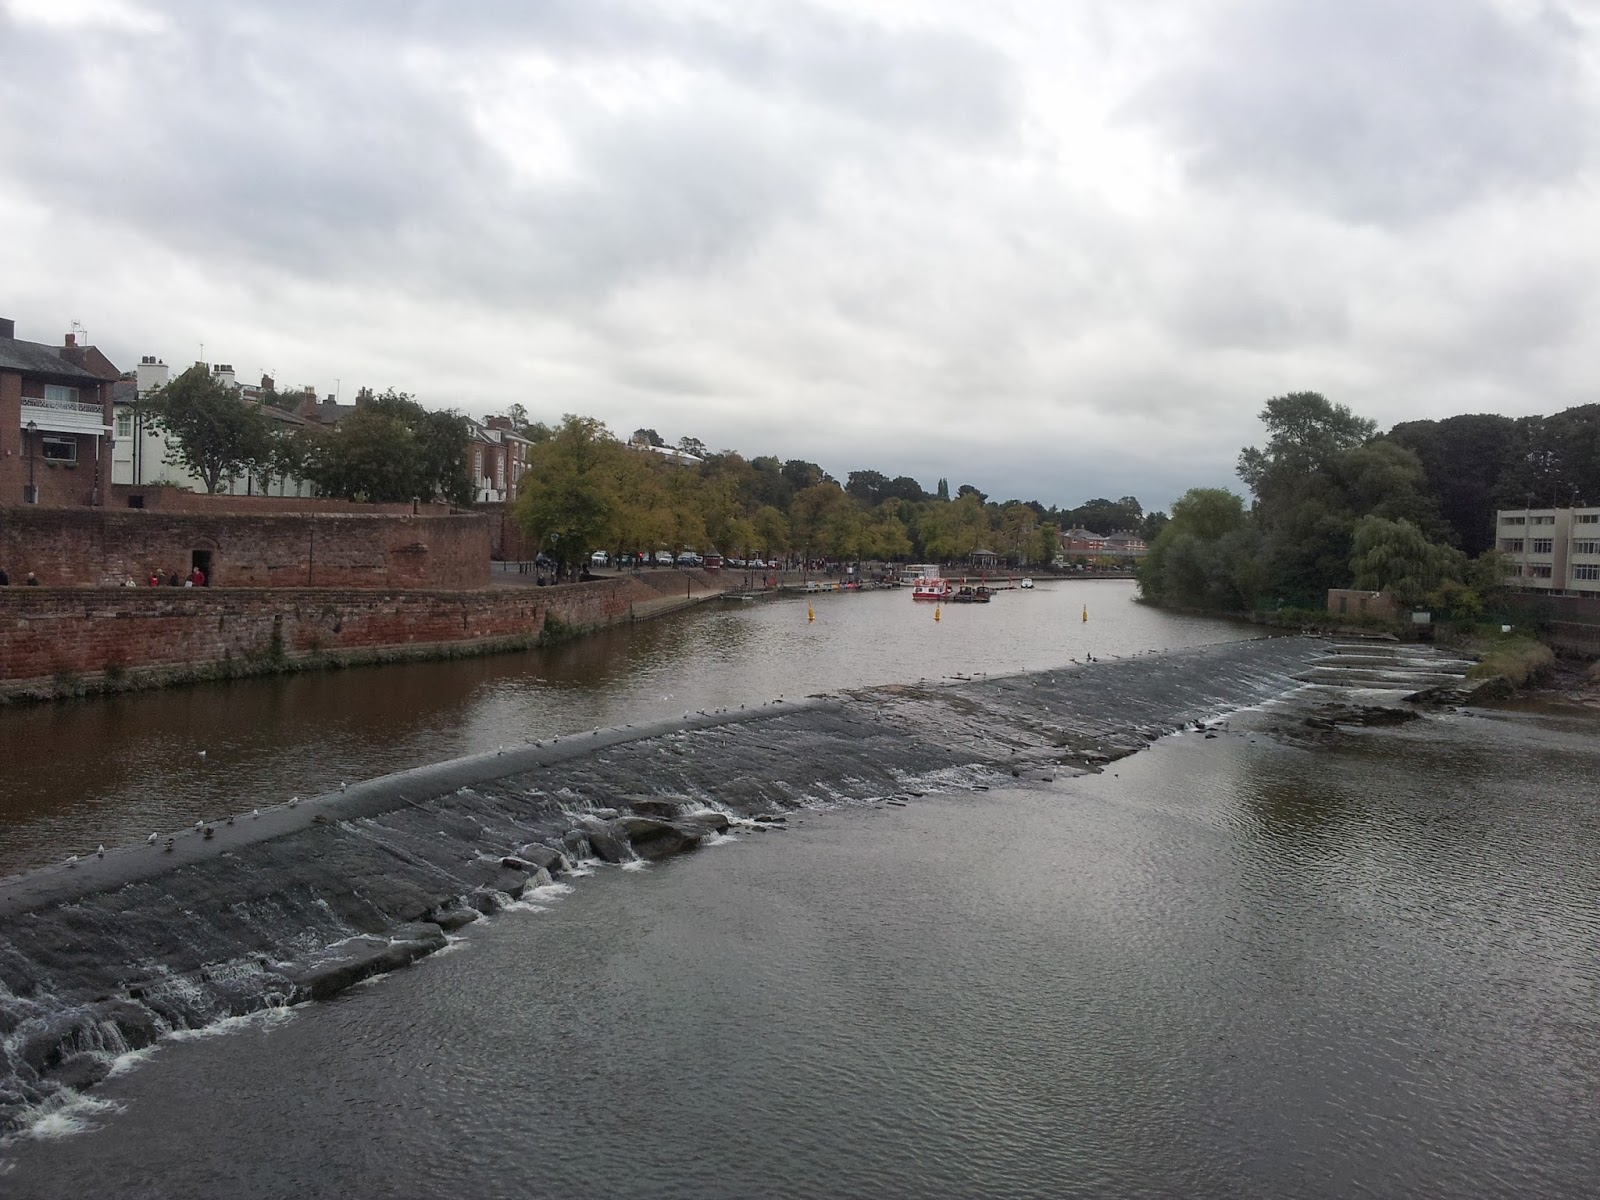 River Dee in Chester, England